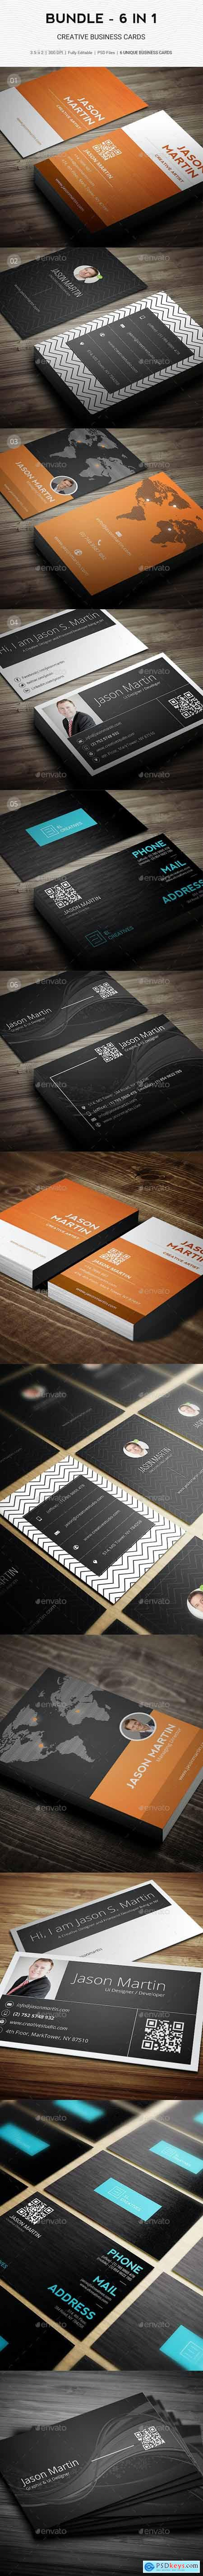 Bundle - Pro 6 in 1 - Creative Business Cards - B49 20603469